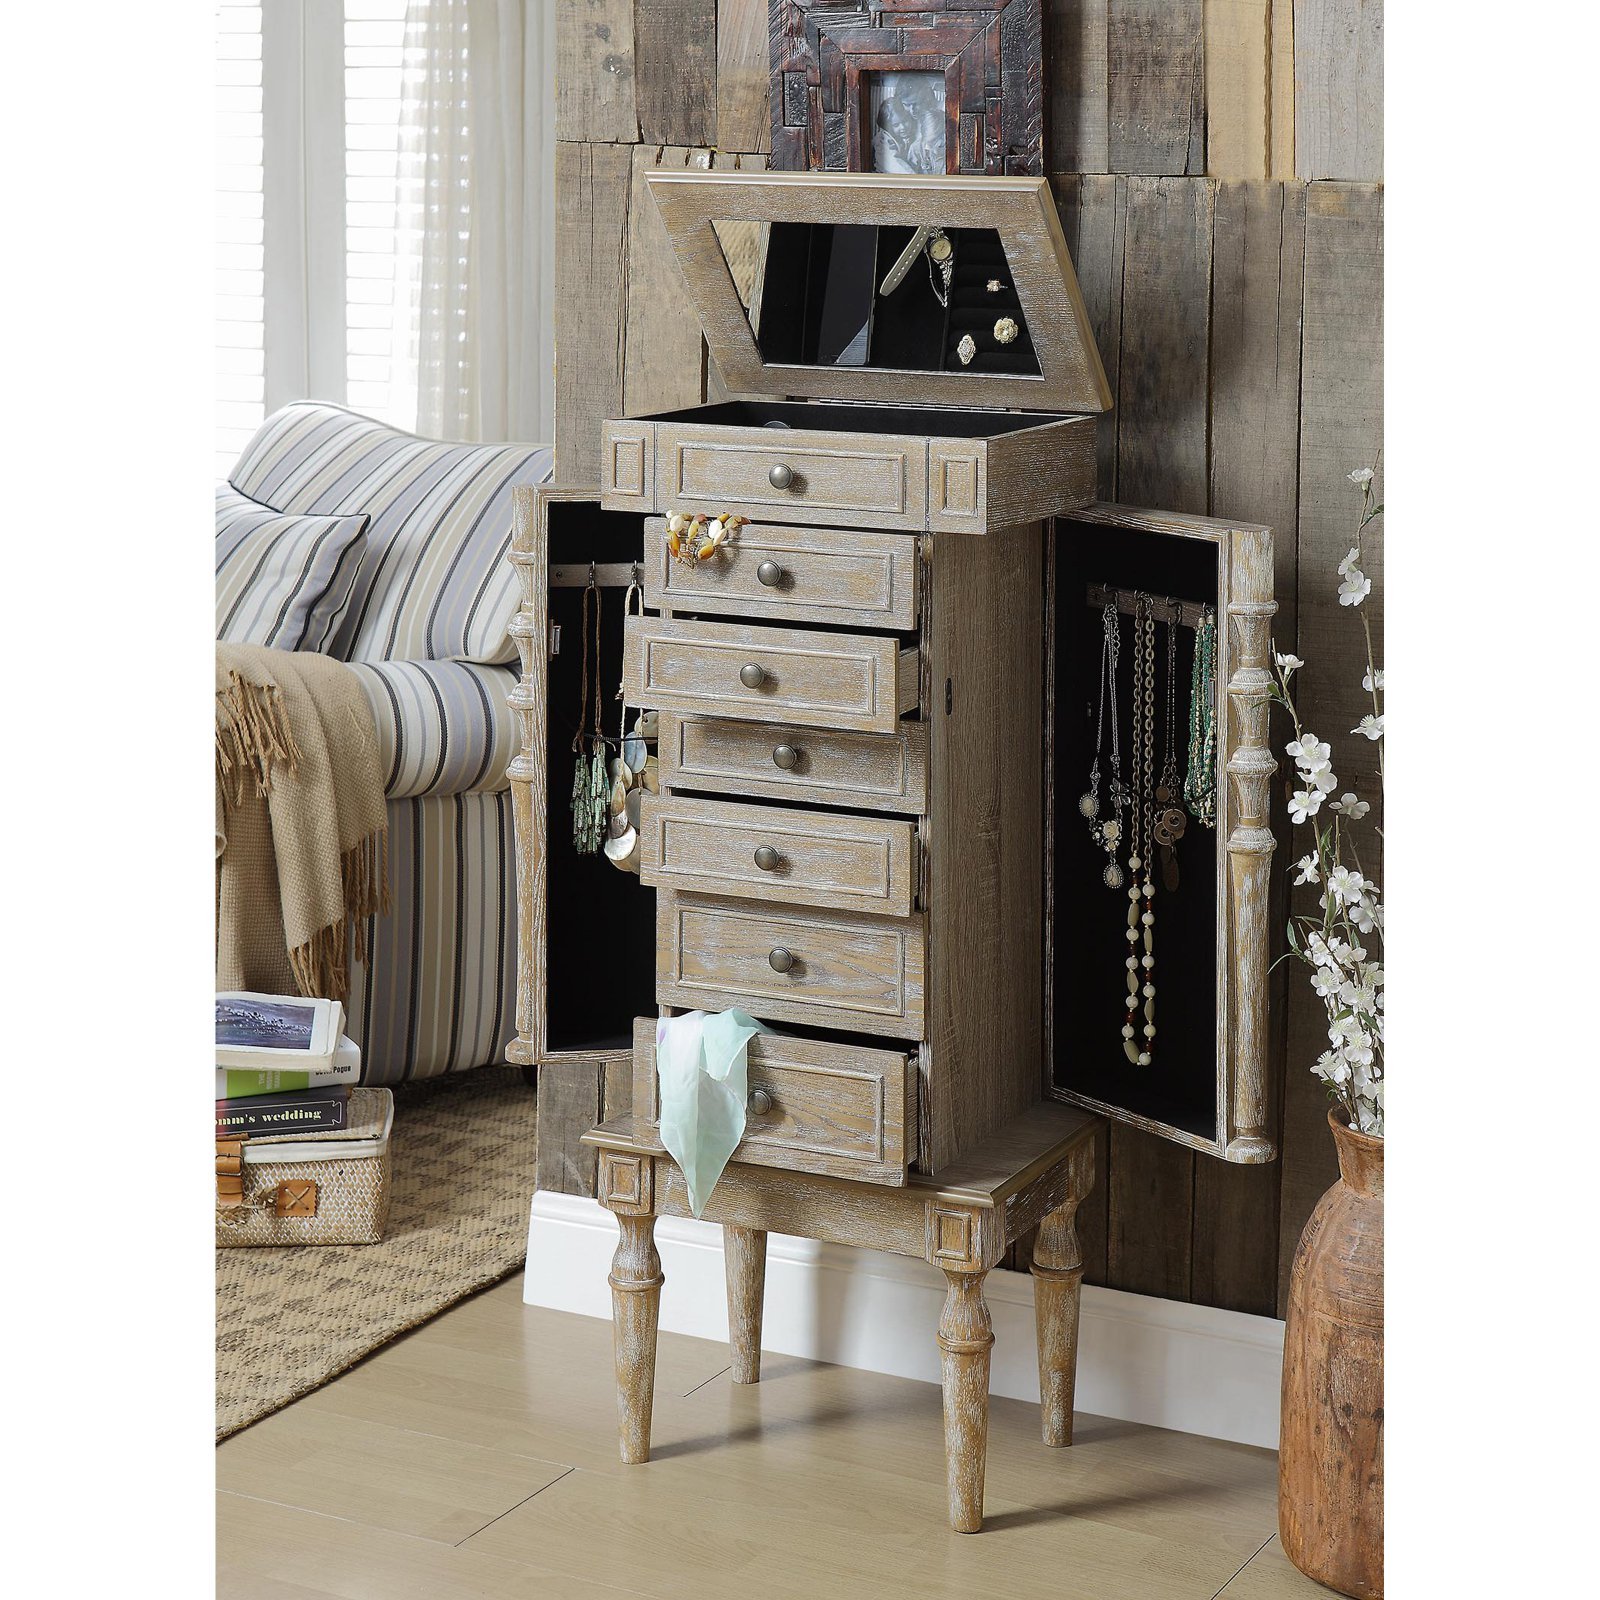 ACME Taline Jewelry Armoire, Weathered Oak by Acme Furniture